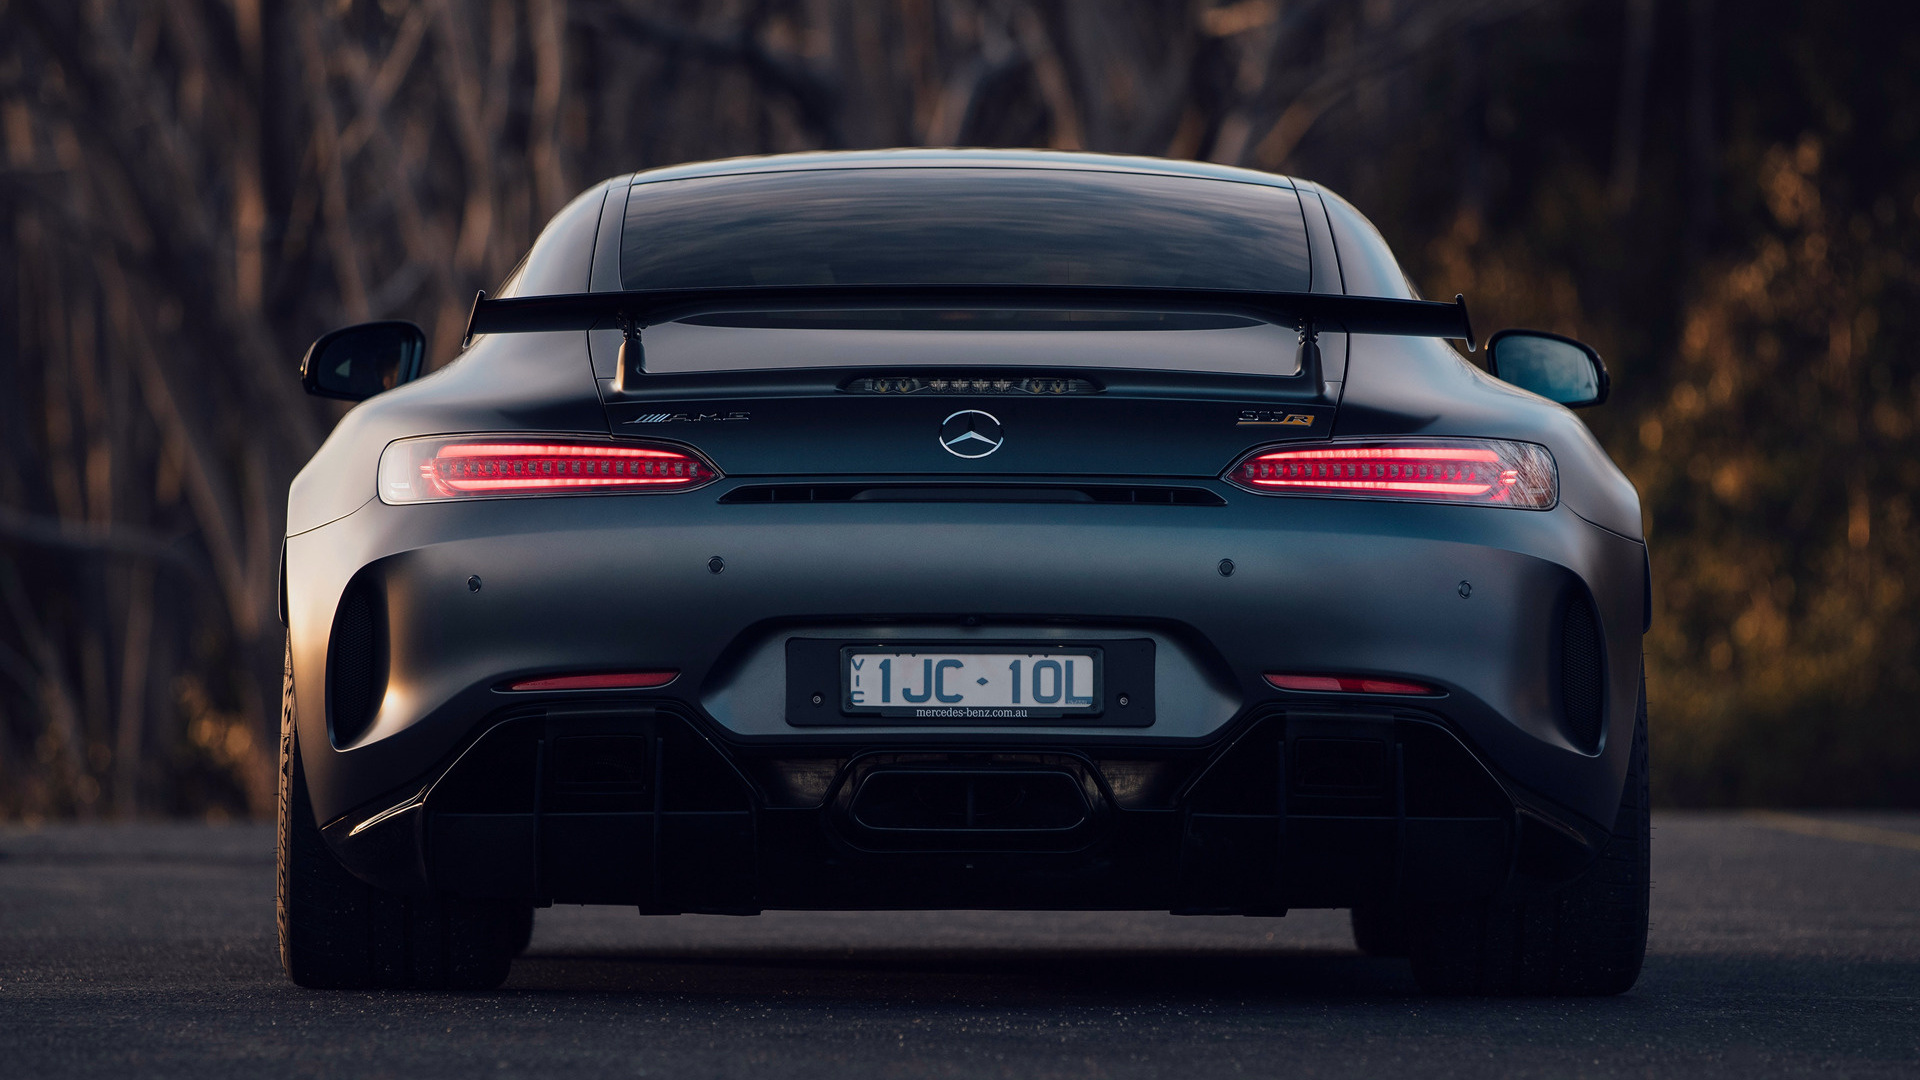 Mercedes Benz Amg >> 2017 Mercedes-AMG GT R (AU) - Wallpapers and HD Images | Car Pixel